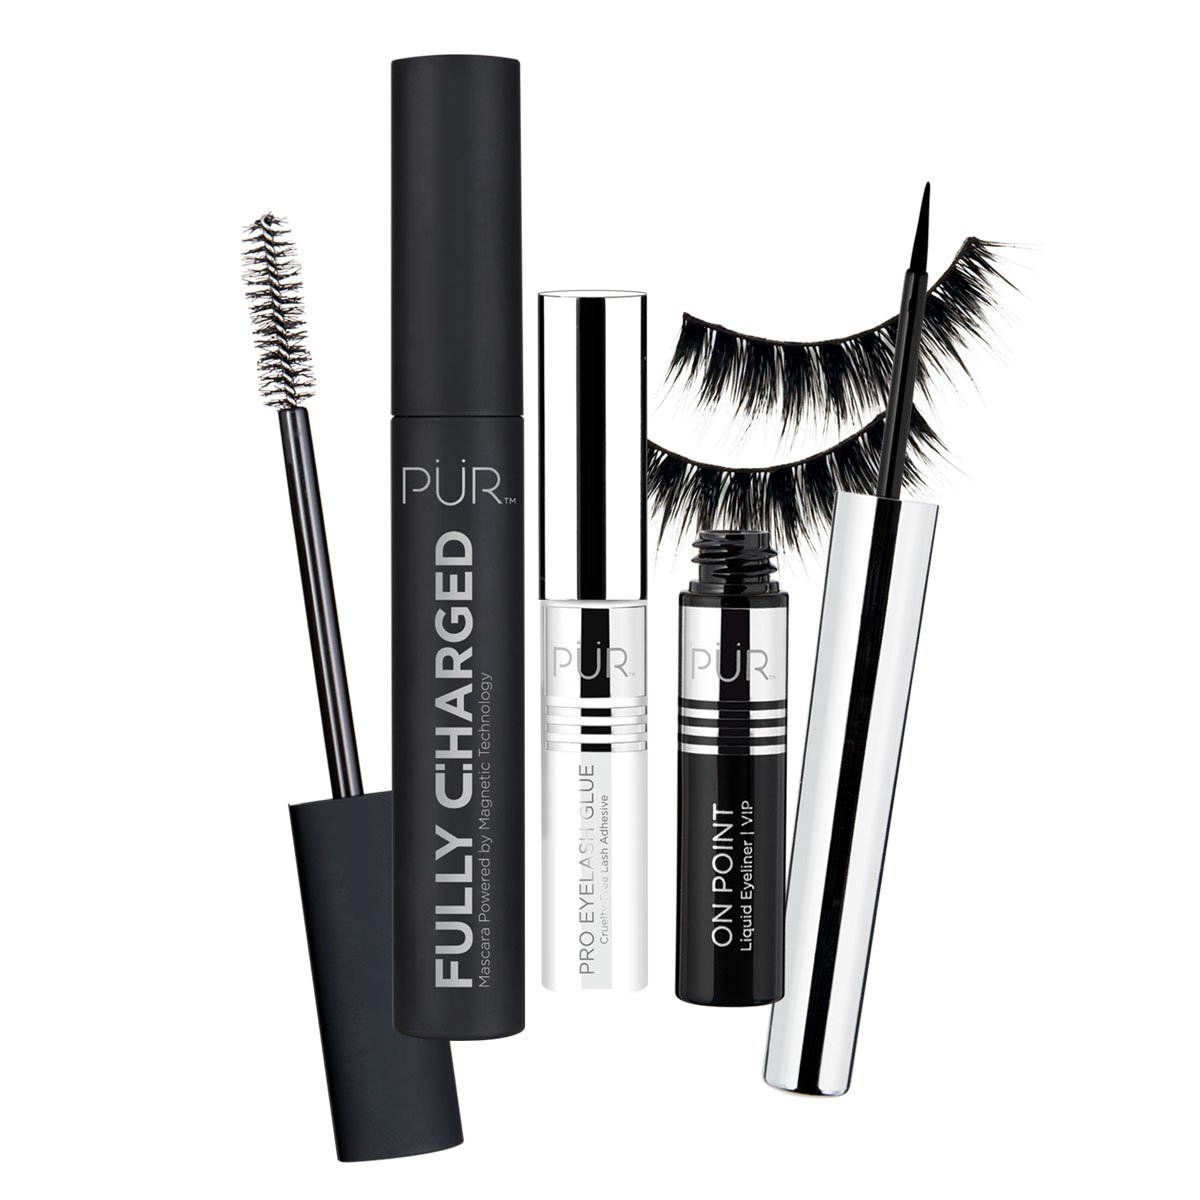 Pur Store View - Life of the Party Mascara, Liner and Lash Set